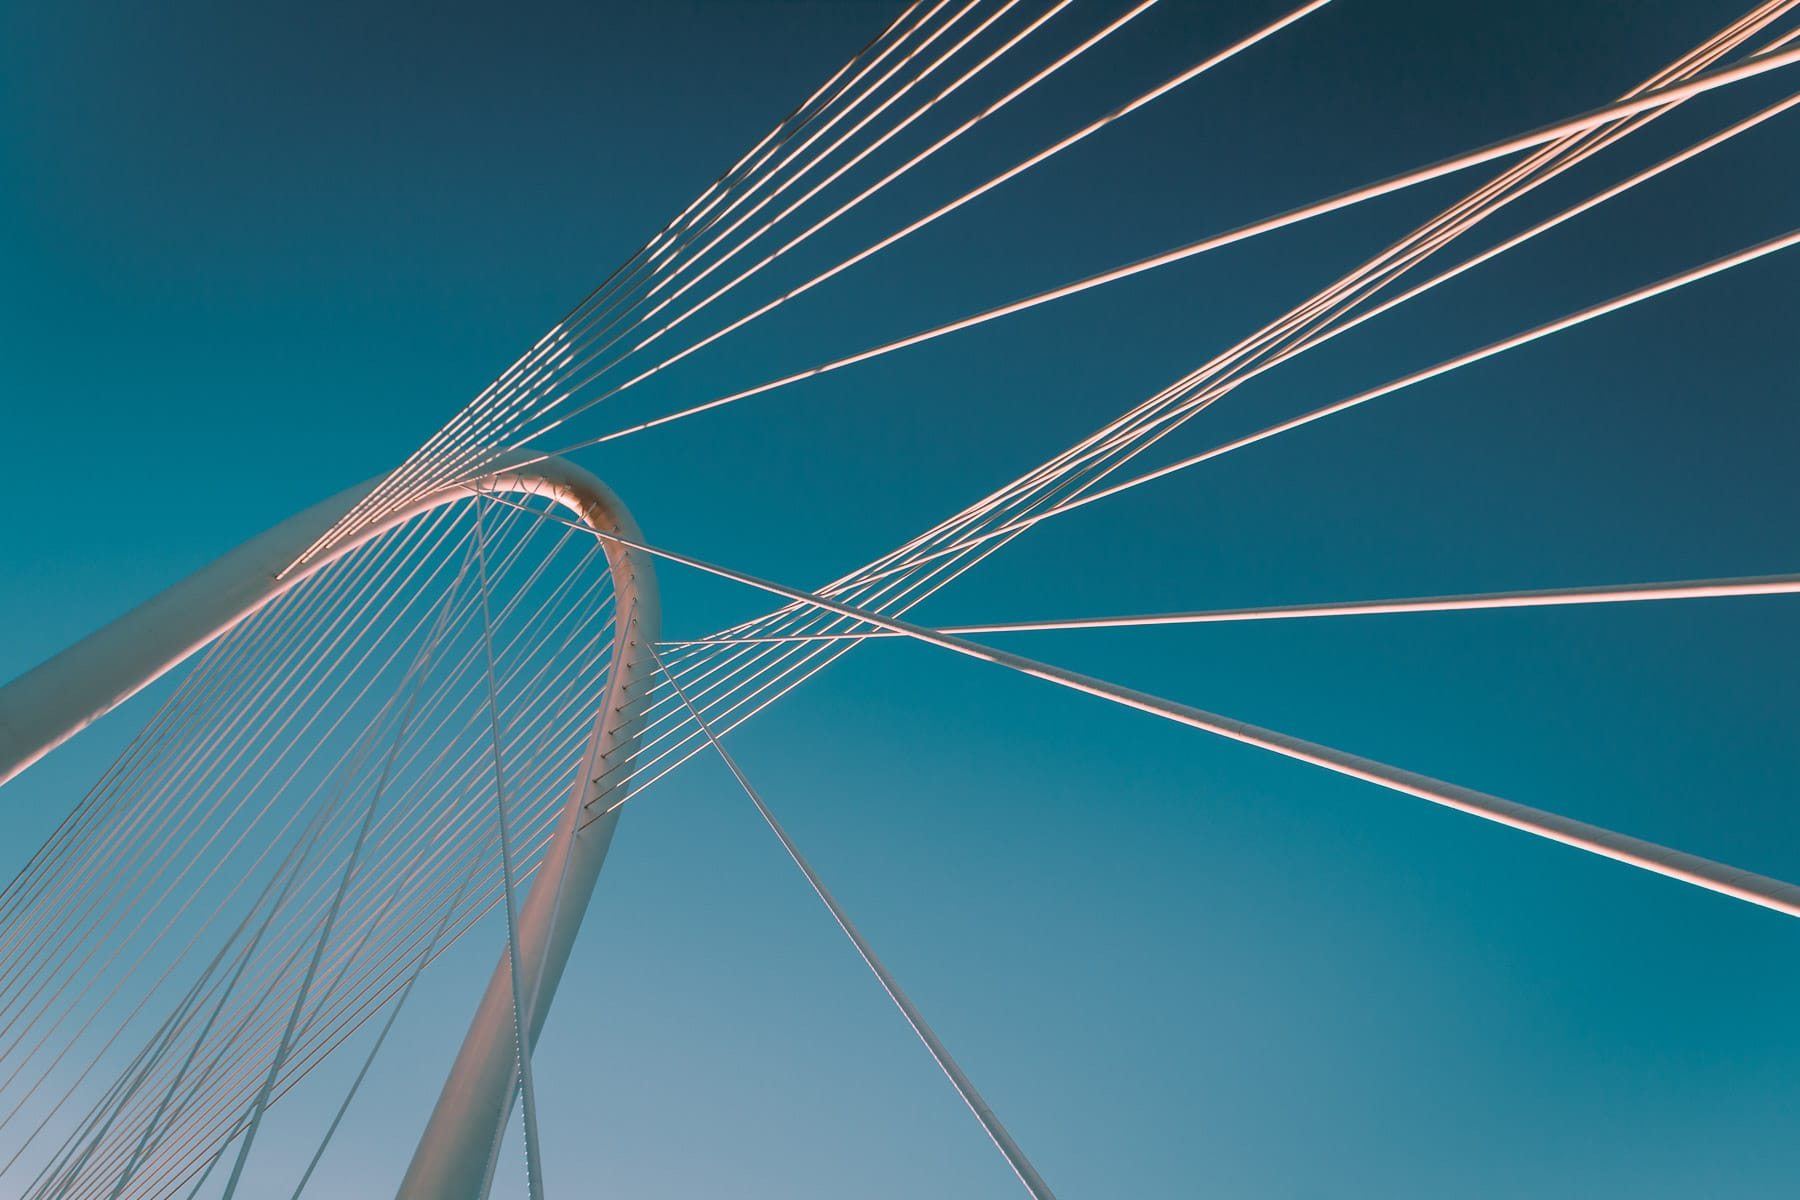 Architectural detail of the Santiago Calatrava-designed Margaret Hunt Hill Bridge, Dallas, Texas.